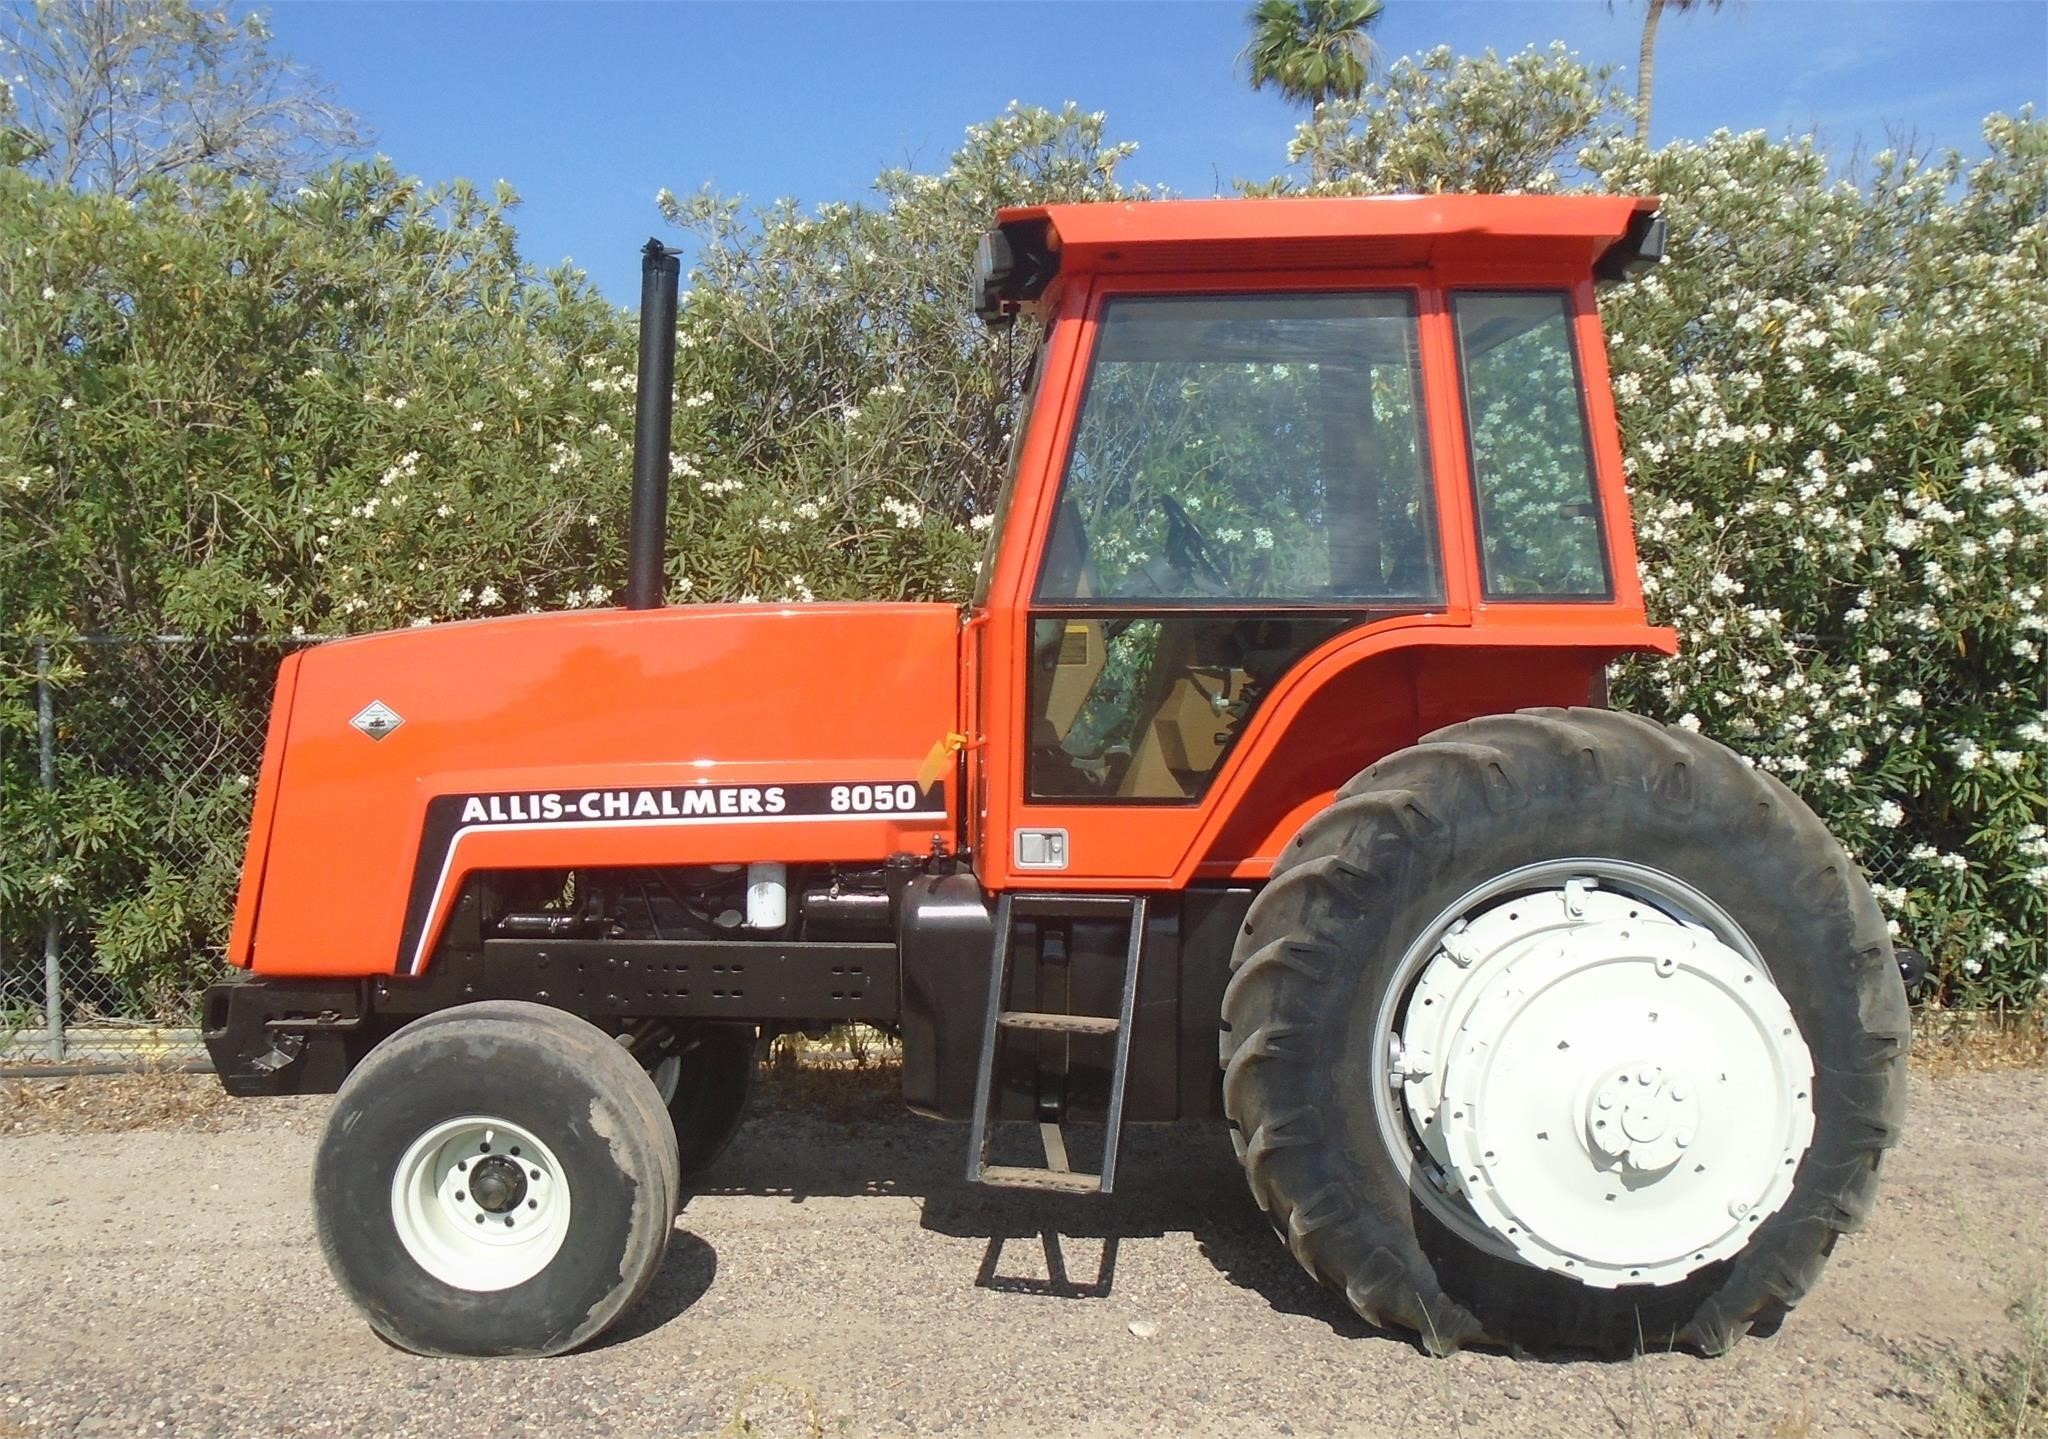 1984 Allis Chalmers 8050 Tractor